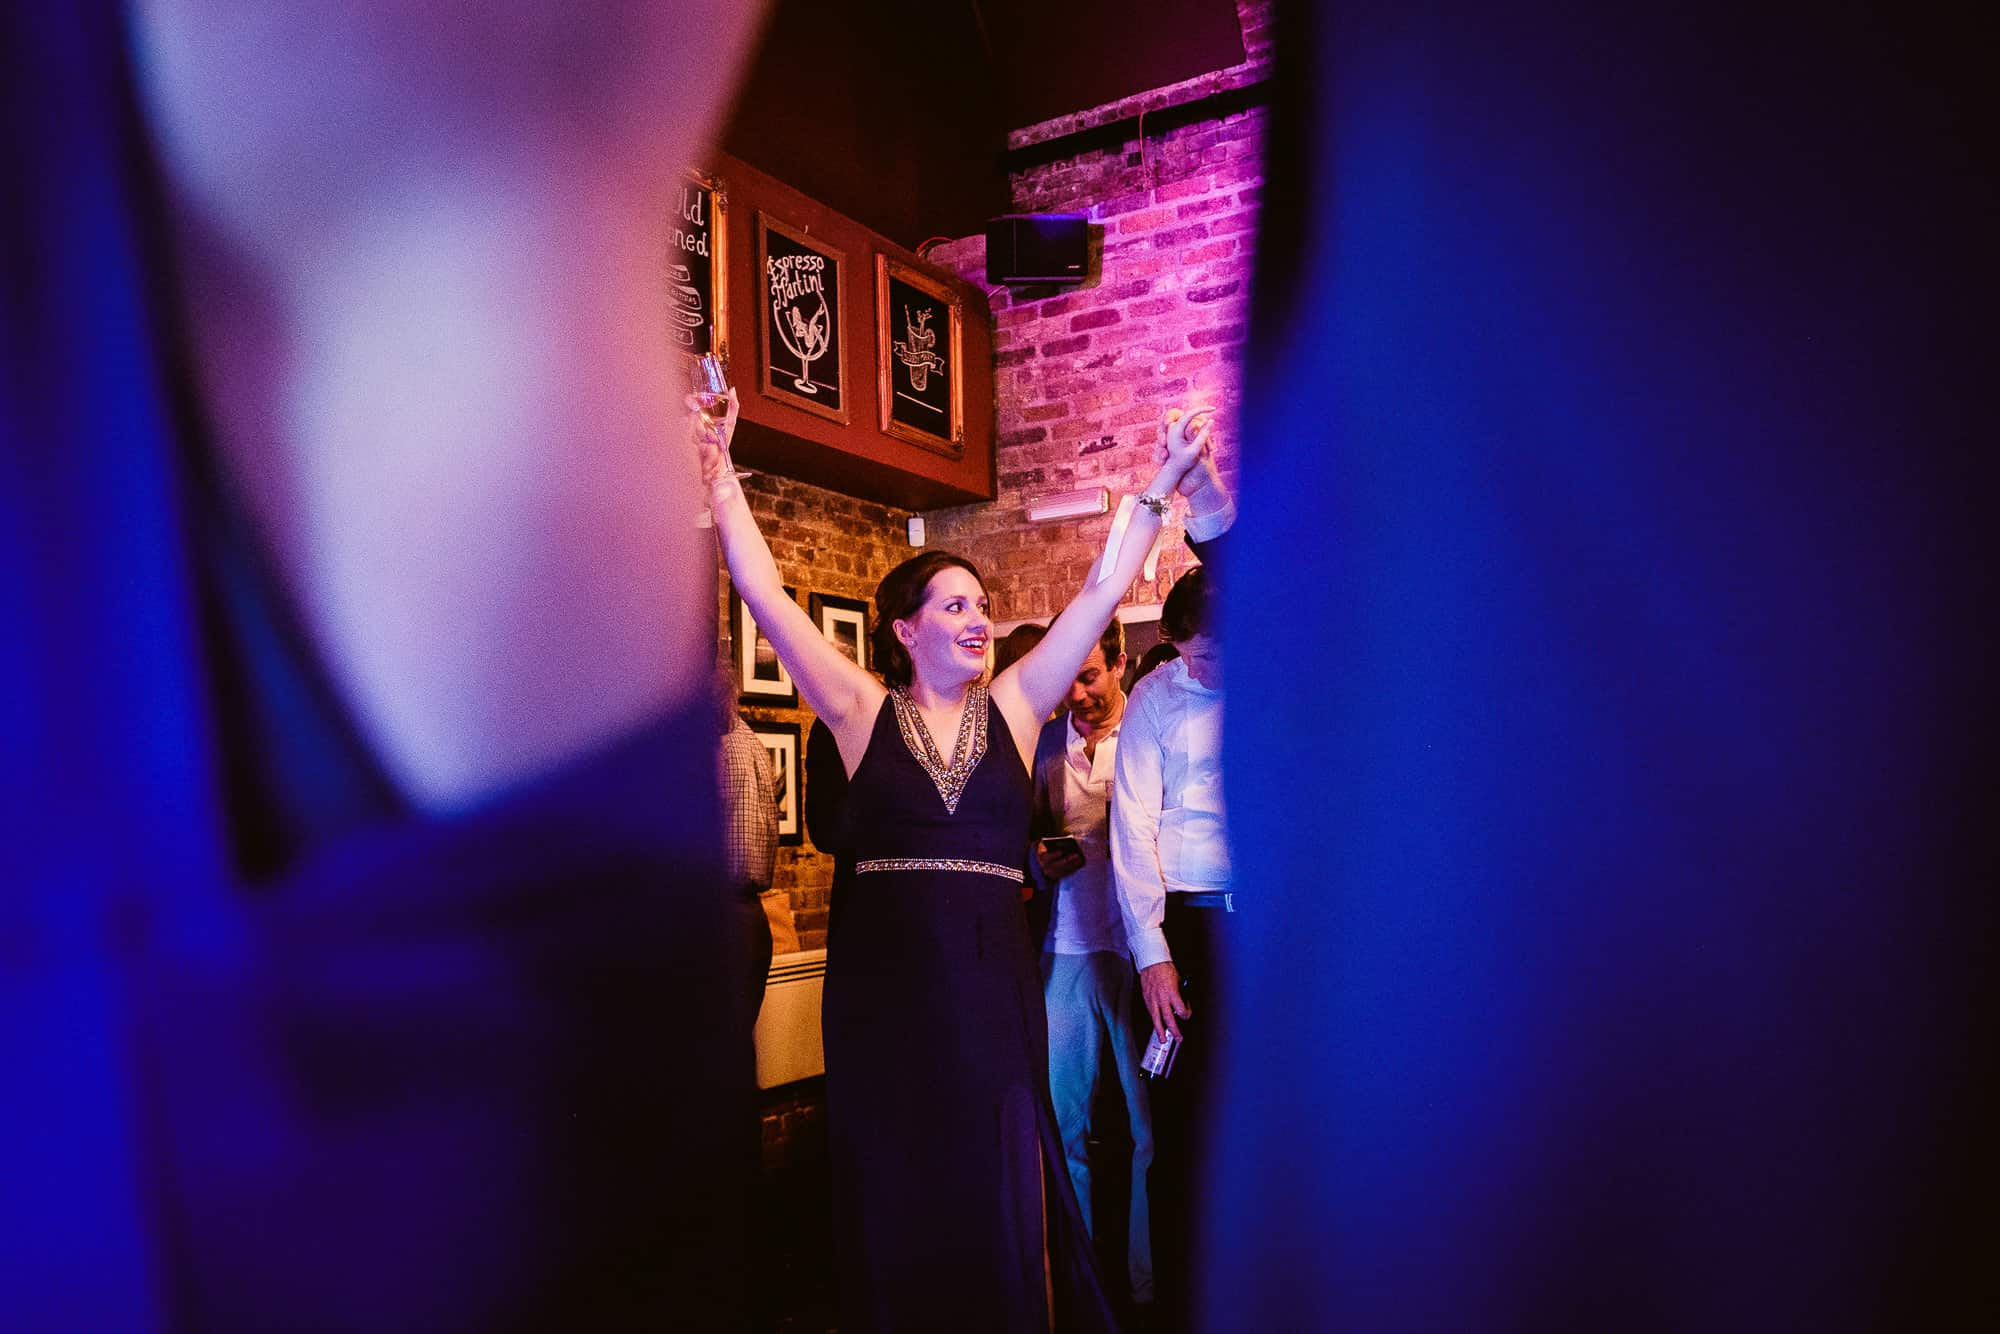 bethnal-green-town-hall-hotel-wedding-photography-0090